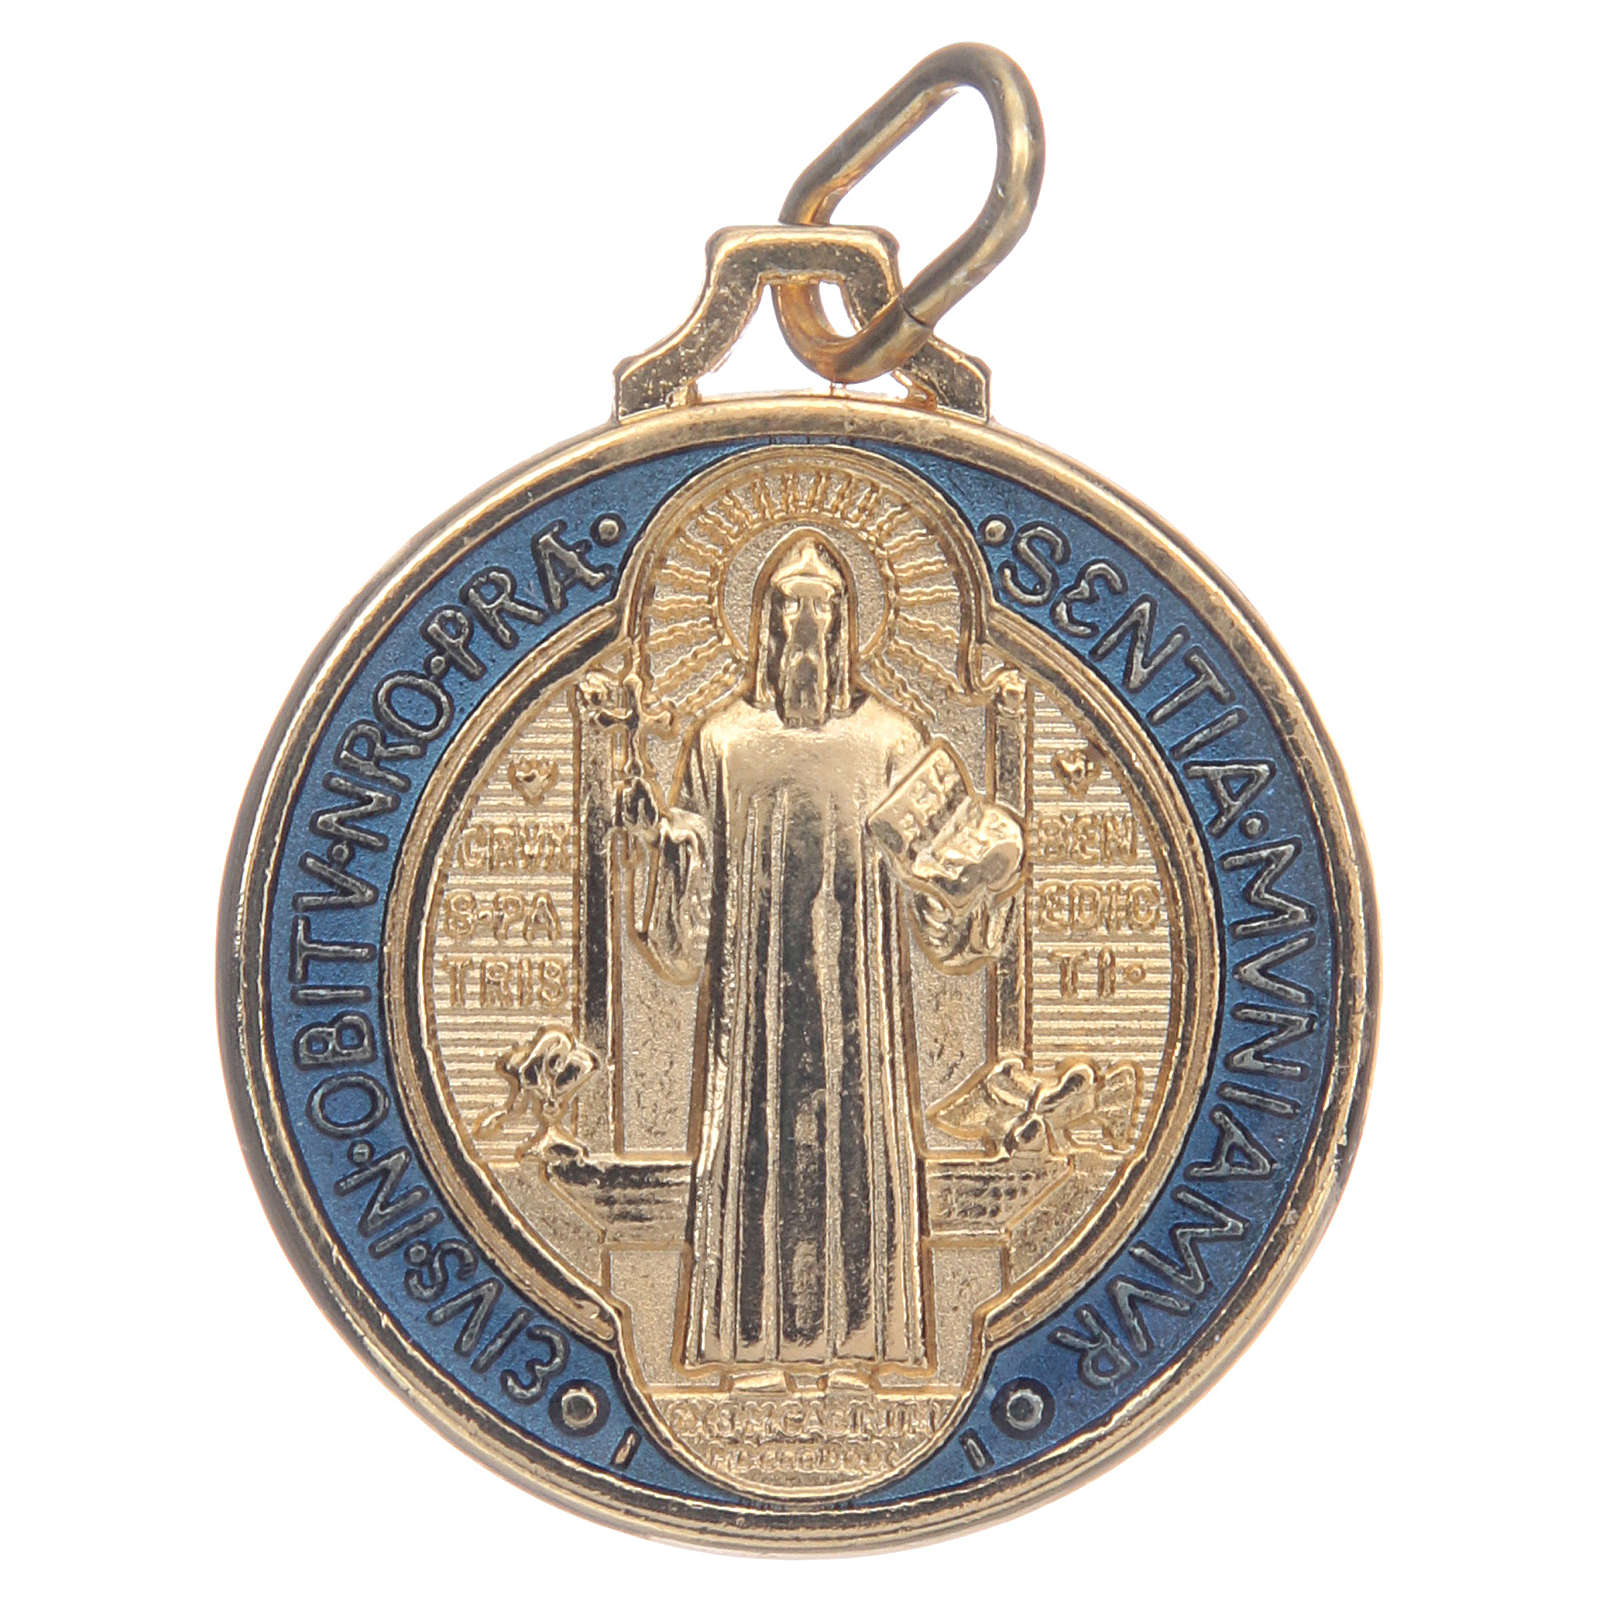 Saint Benedict medal in gold plated zamak and enamel 4